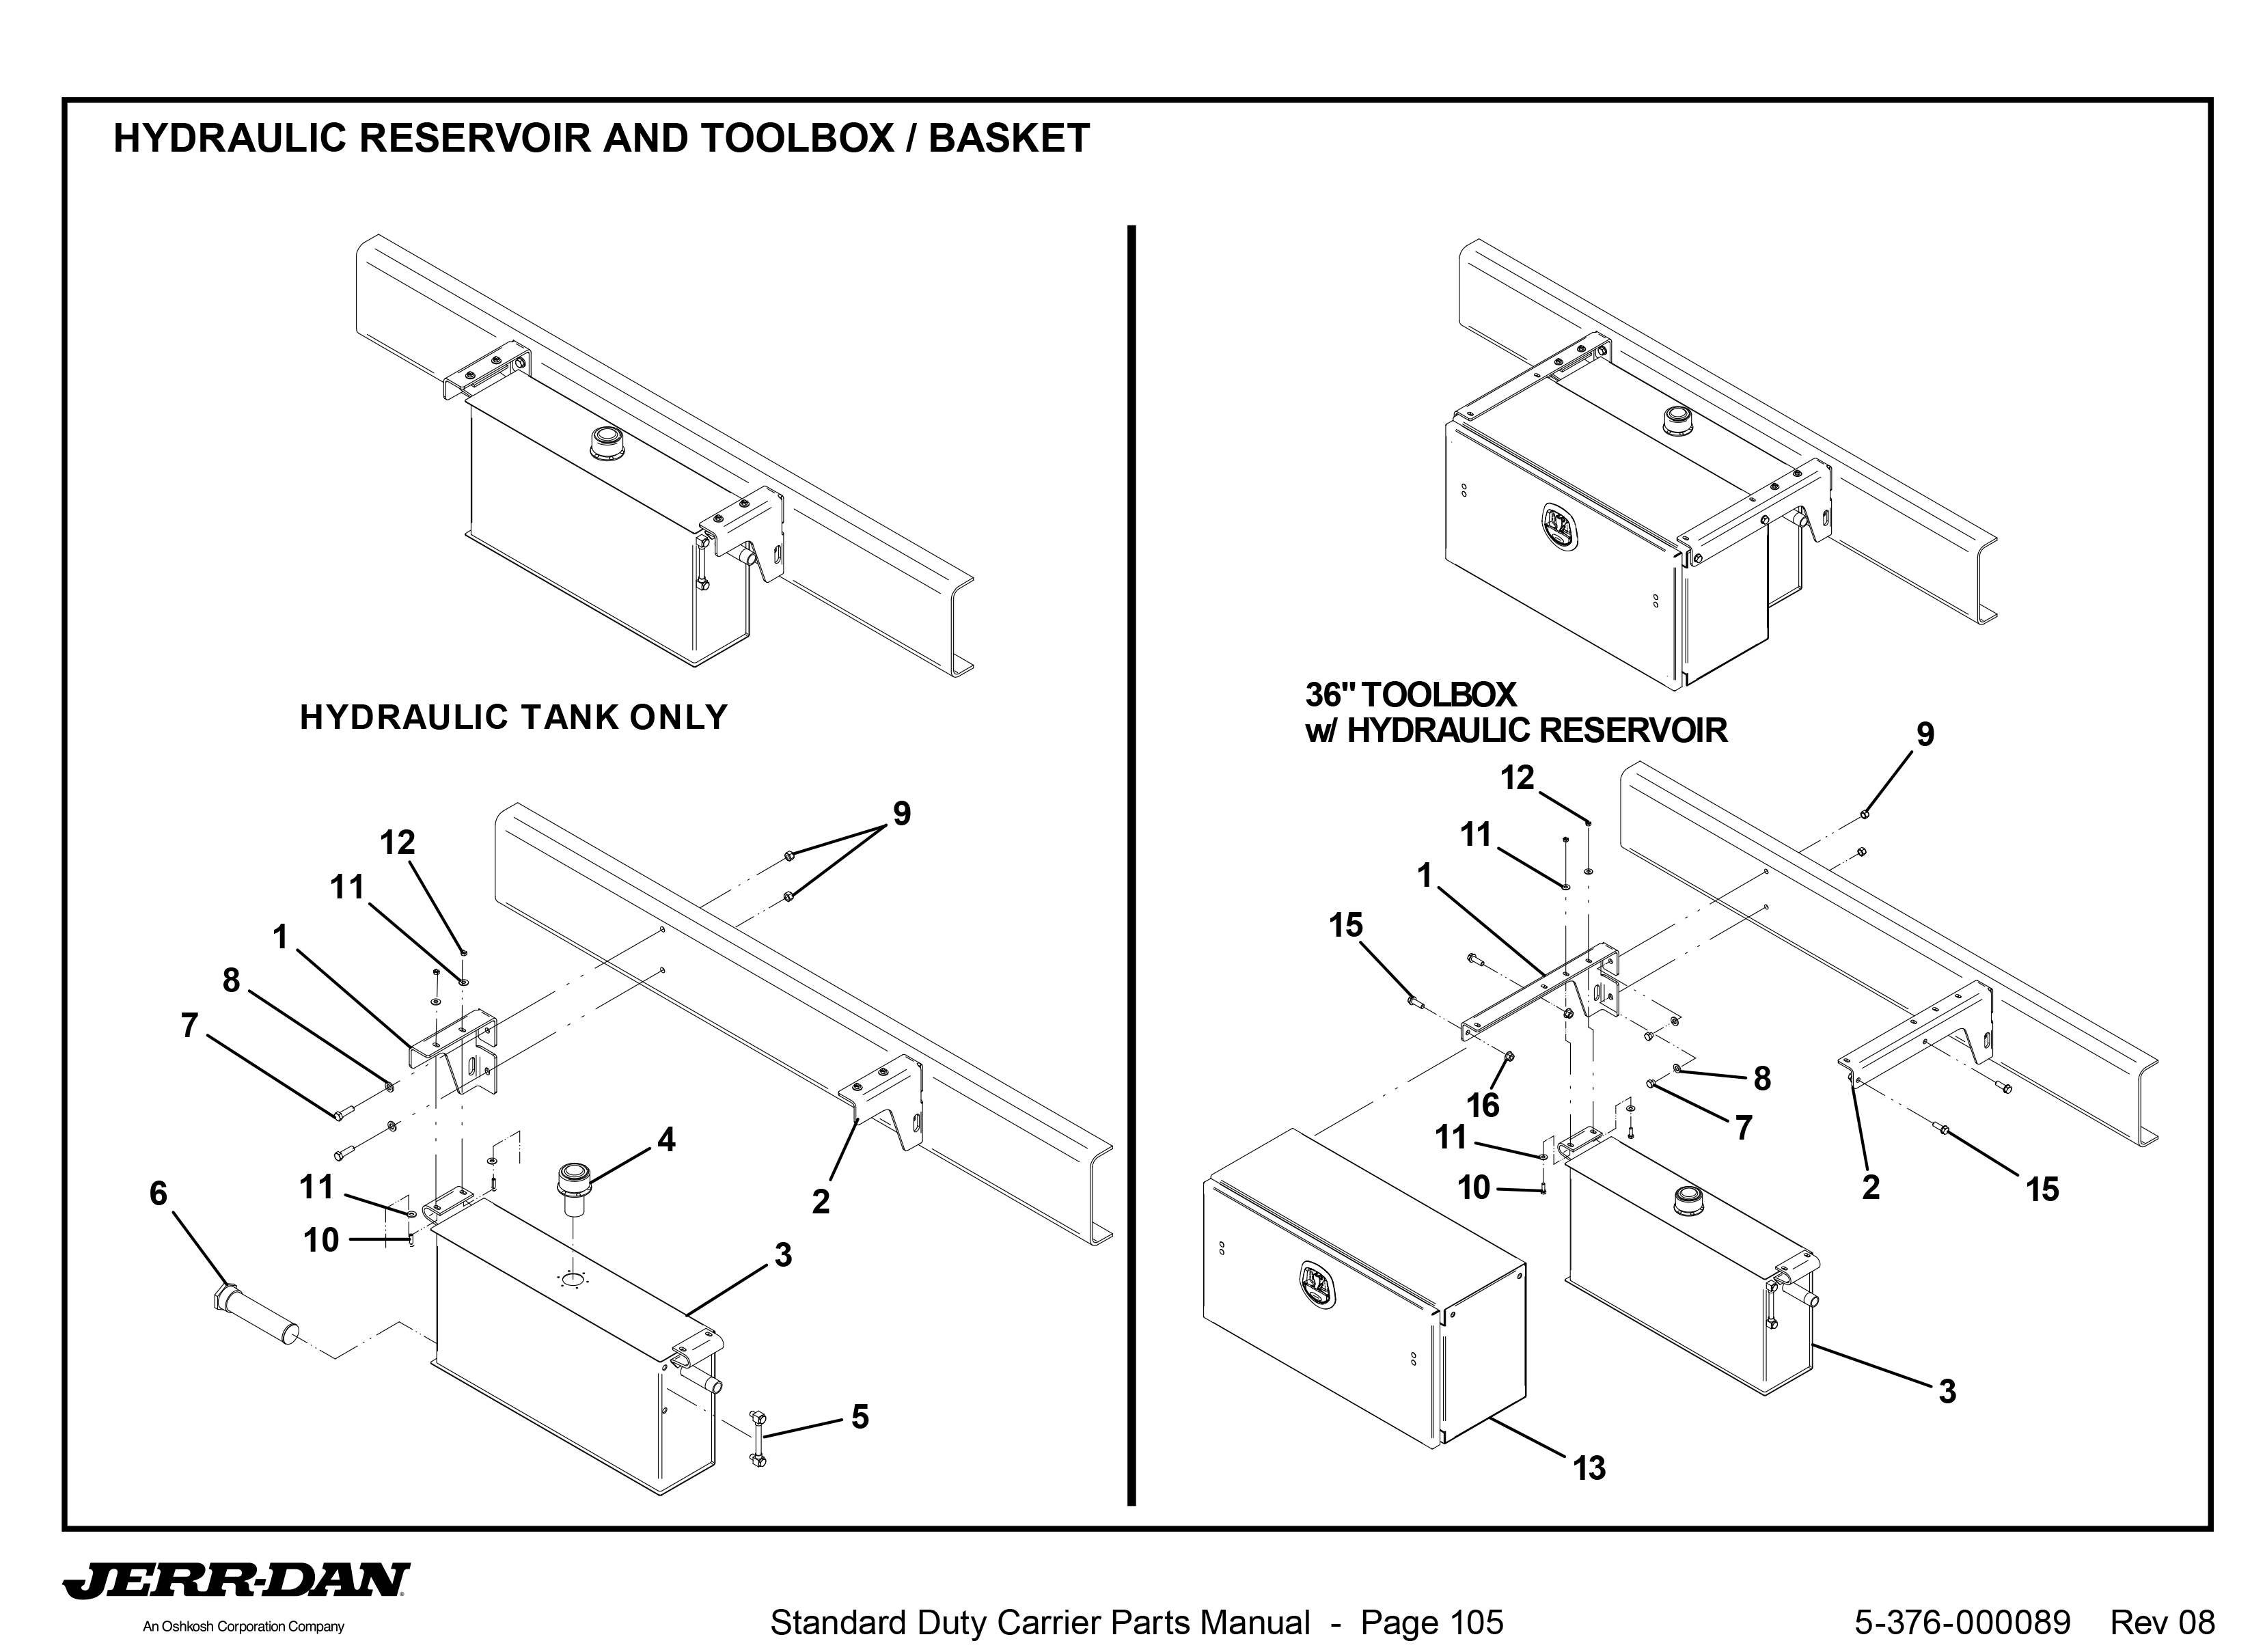 Mounting Bracket - Short (Part 2)